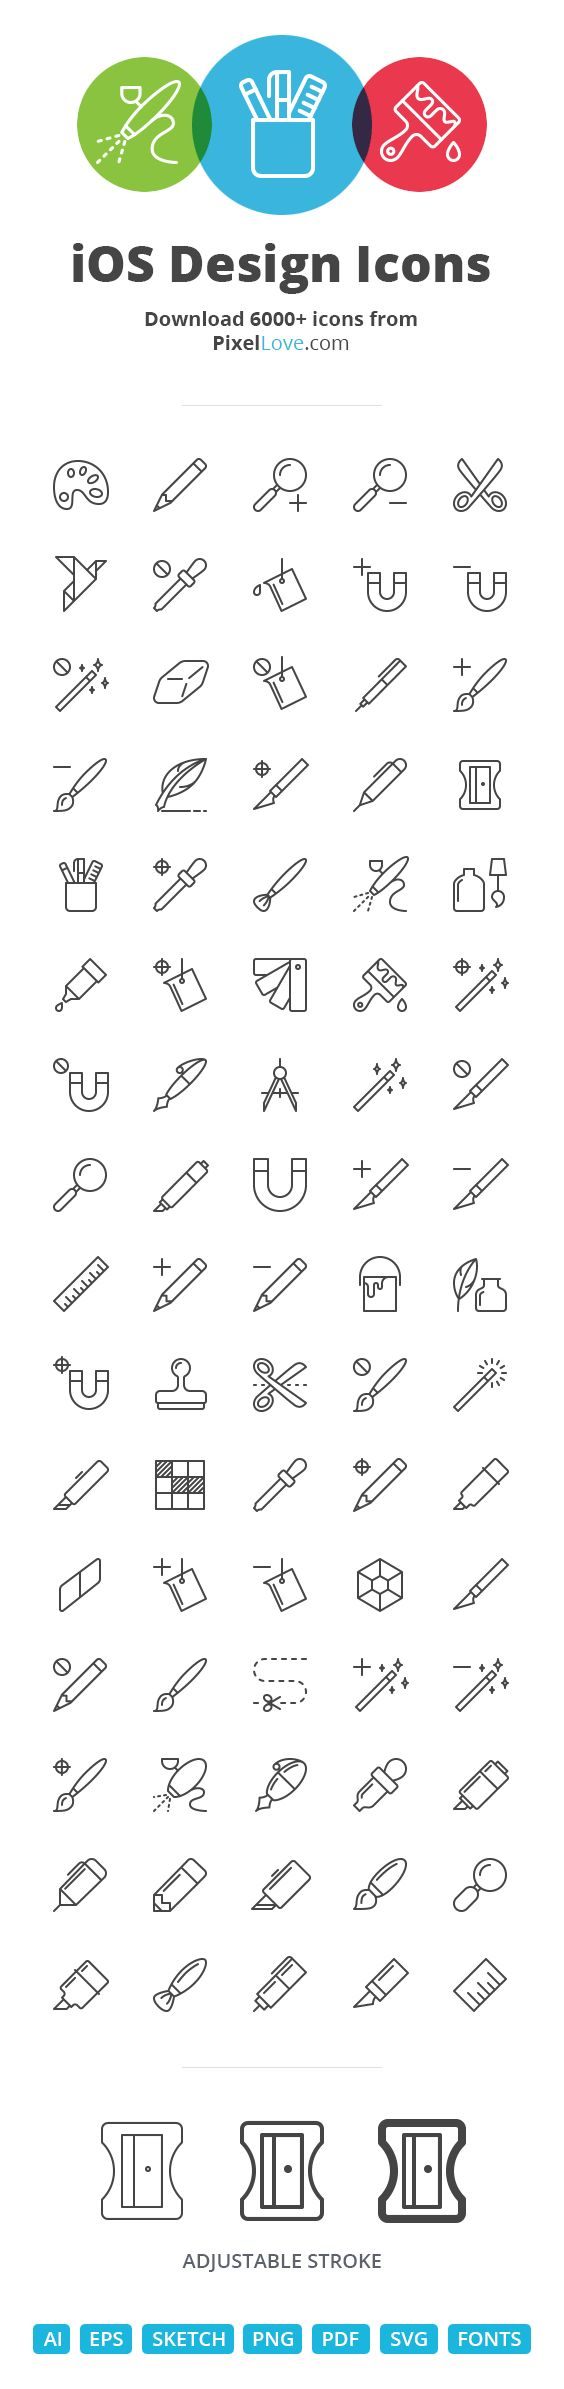 Arguably the largest  #iOS icon pack available with 5000+ #icons. Designed on pixel grids ensuring razor sharp detail for tab bars, toolbars and 3D Touch menus as well as Android actions and notifications.